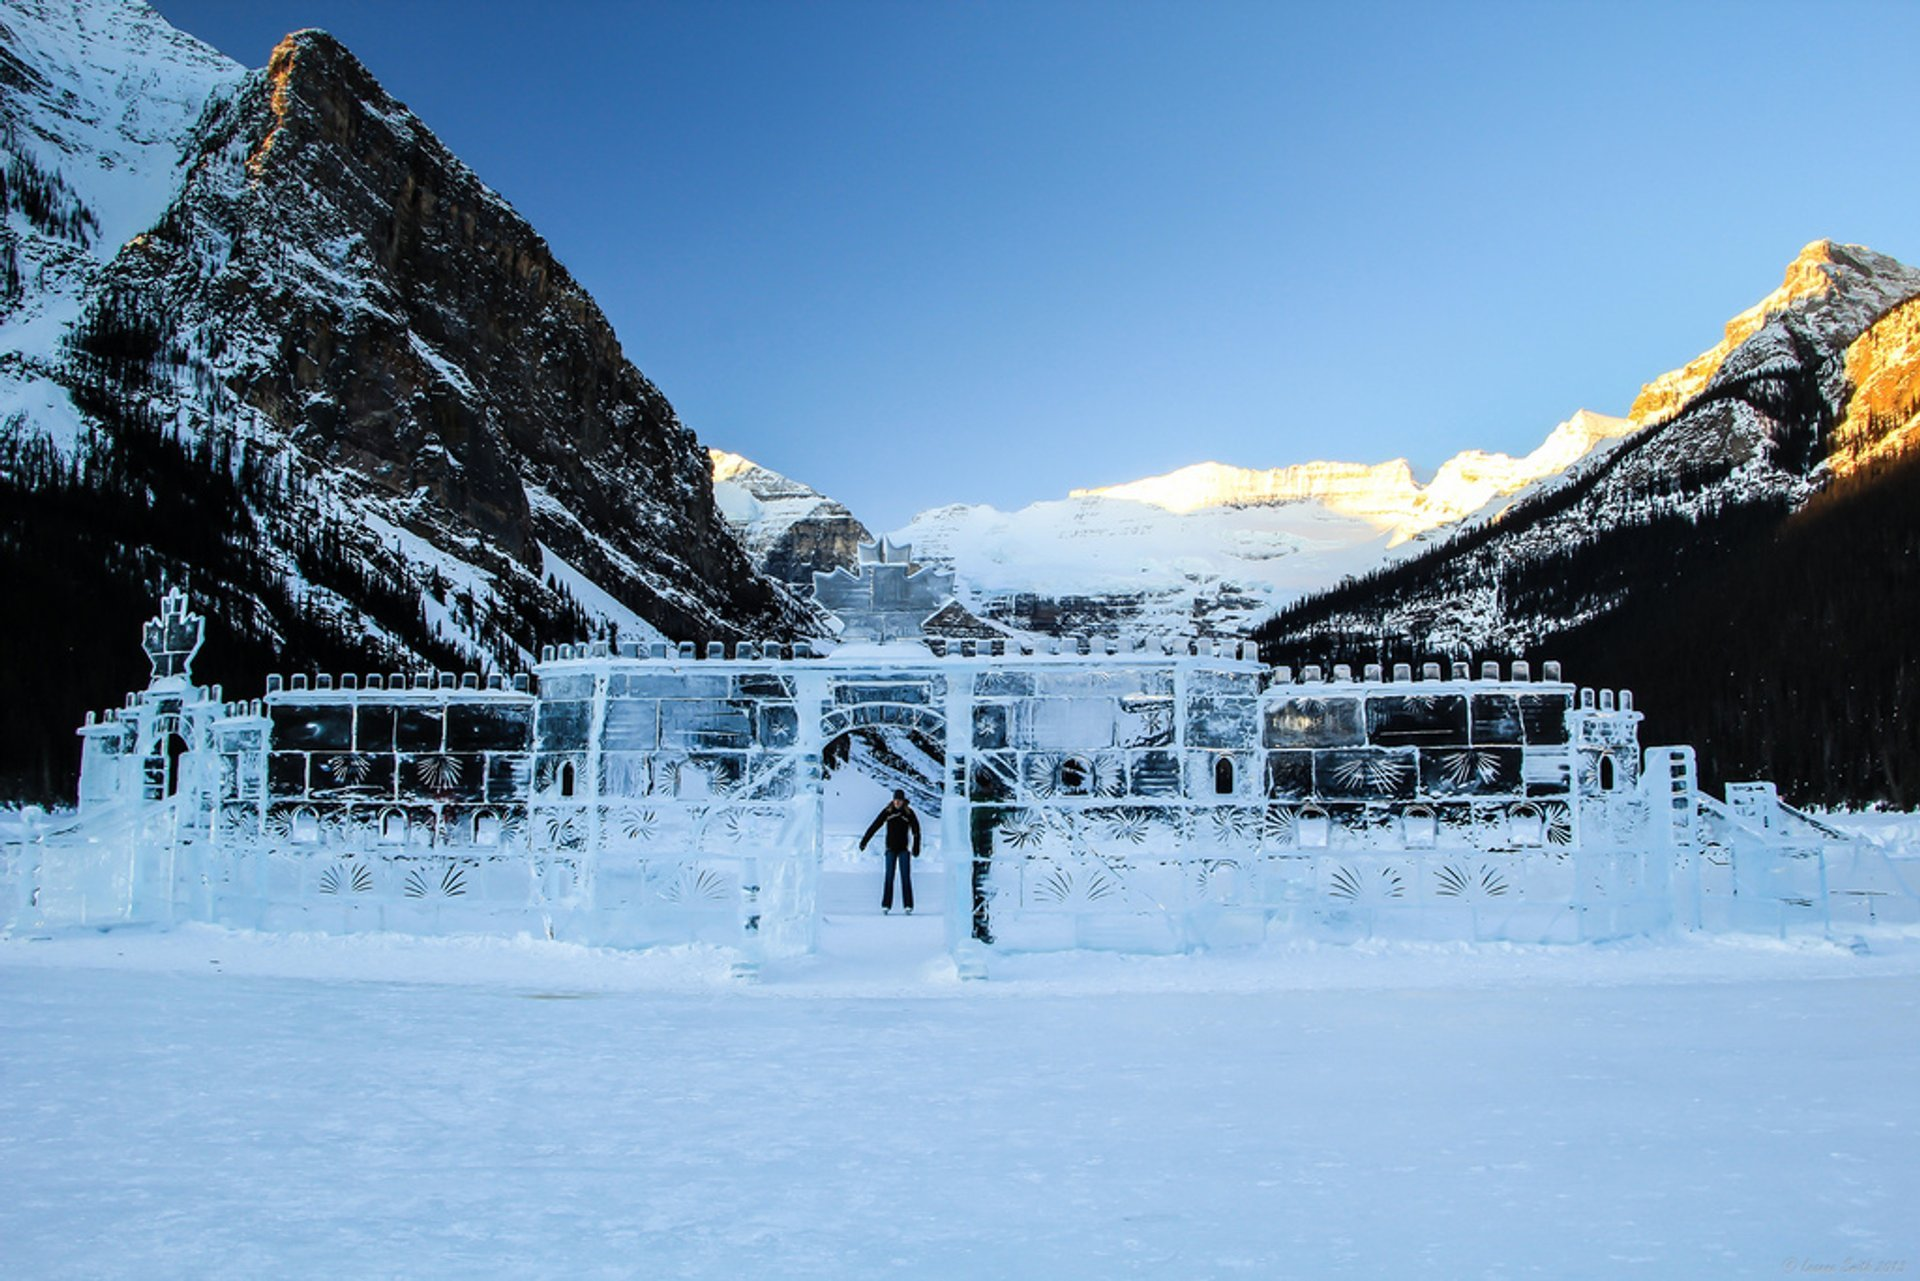 Best time to see Skating on Lake Louise in Banff & Jasper National Parks 2019